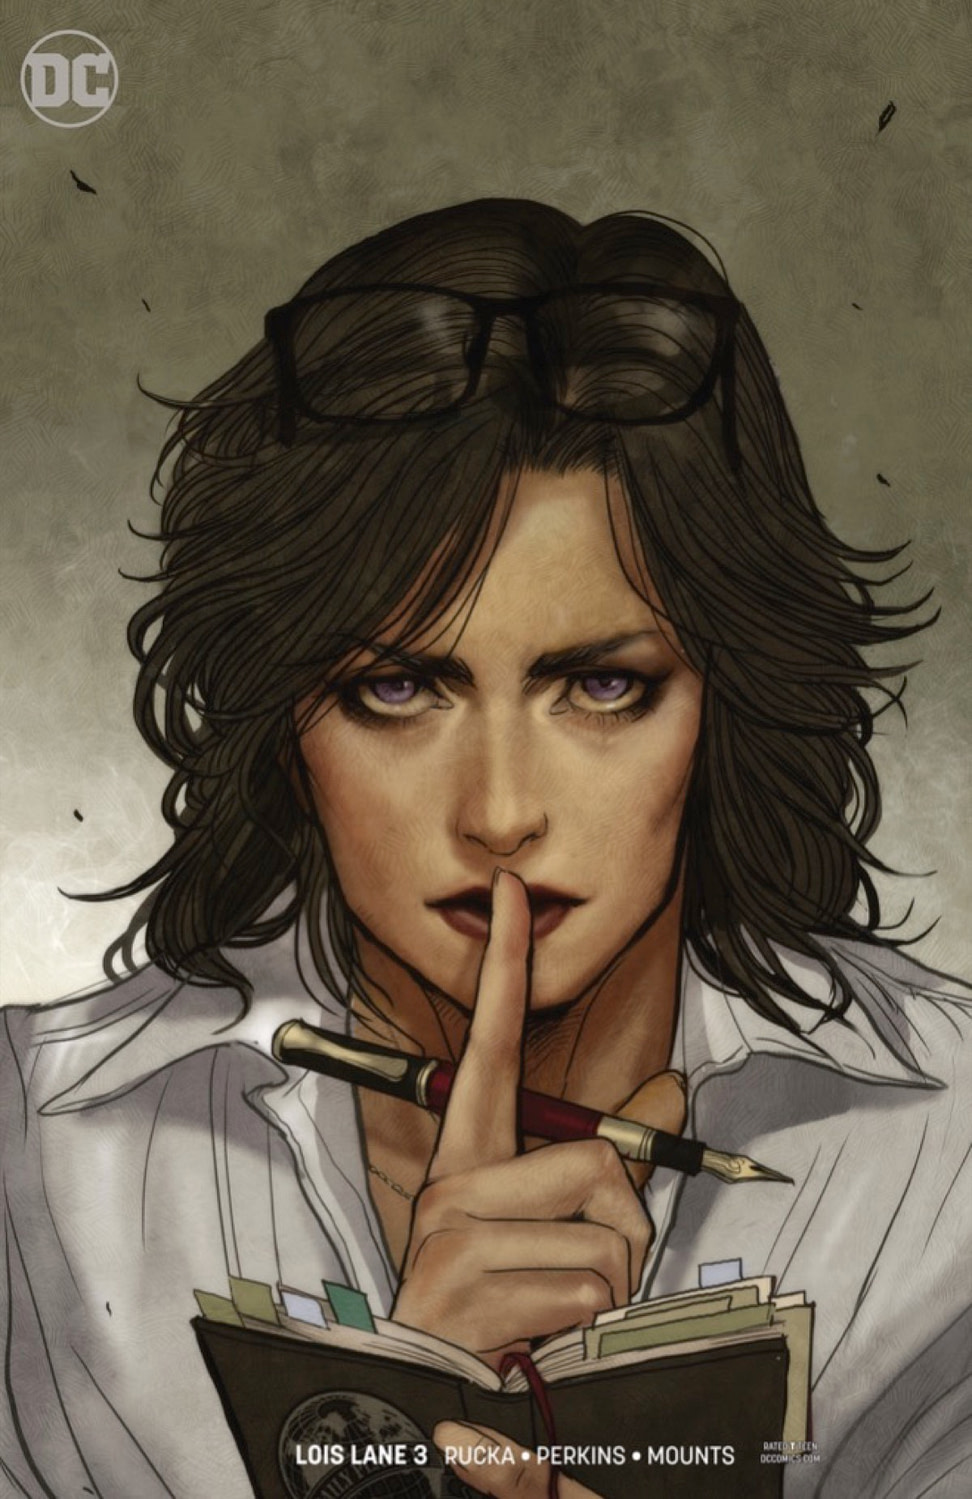 EXCLUSIVE Lois Lane #3 Preview